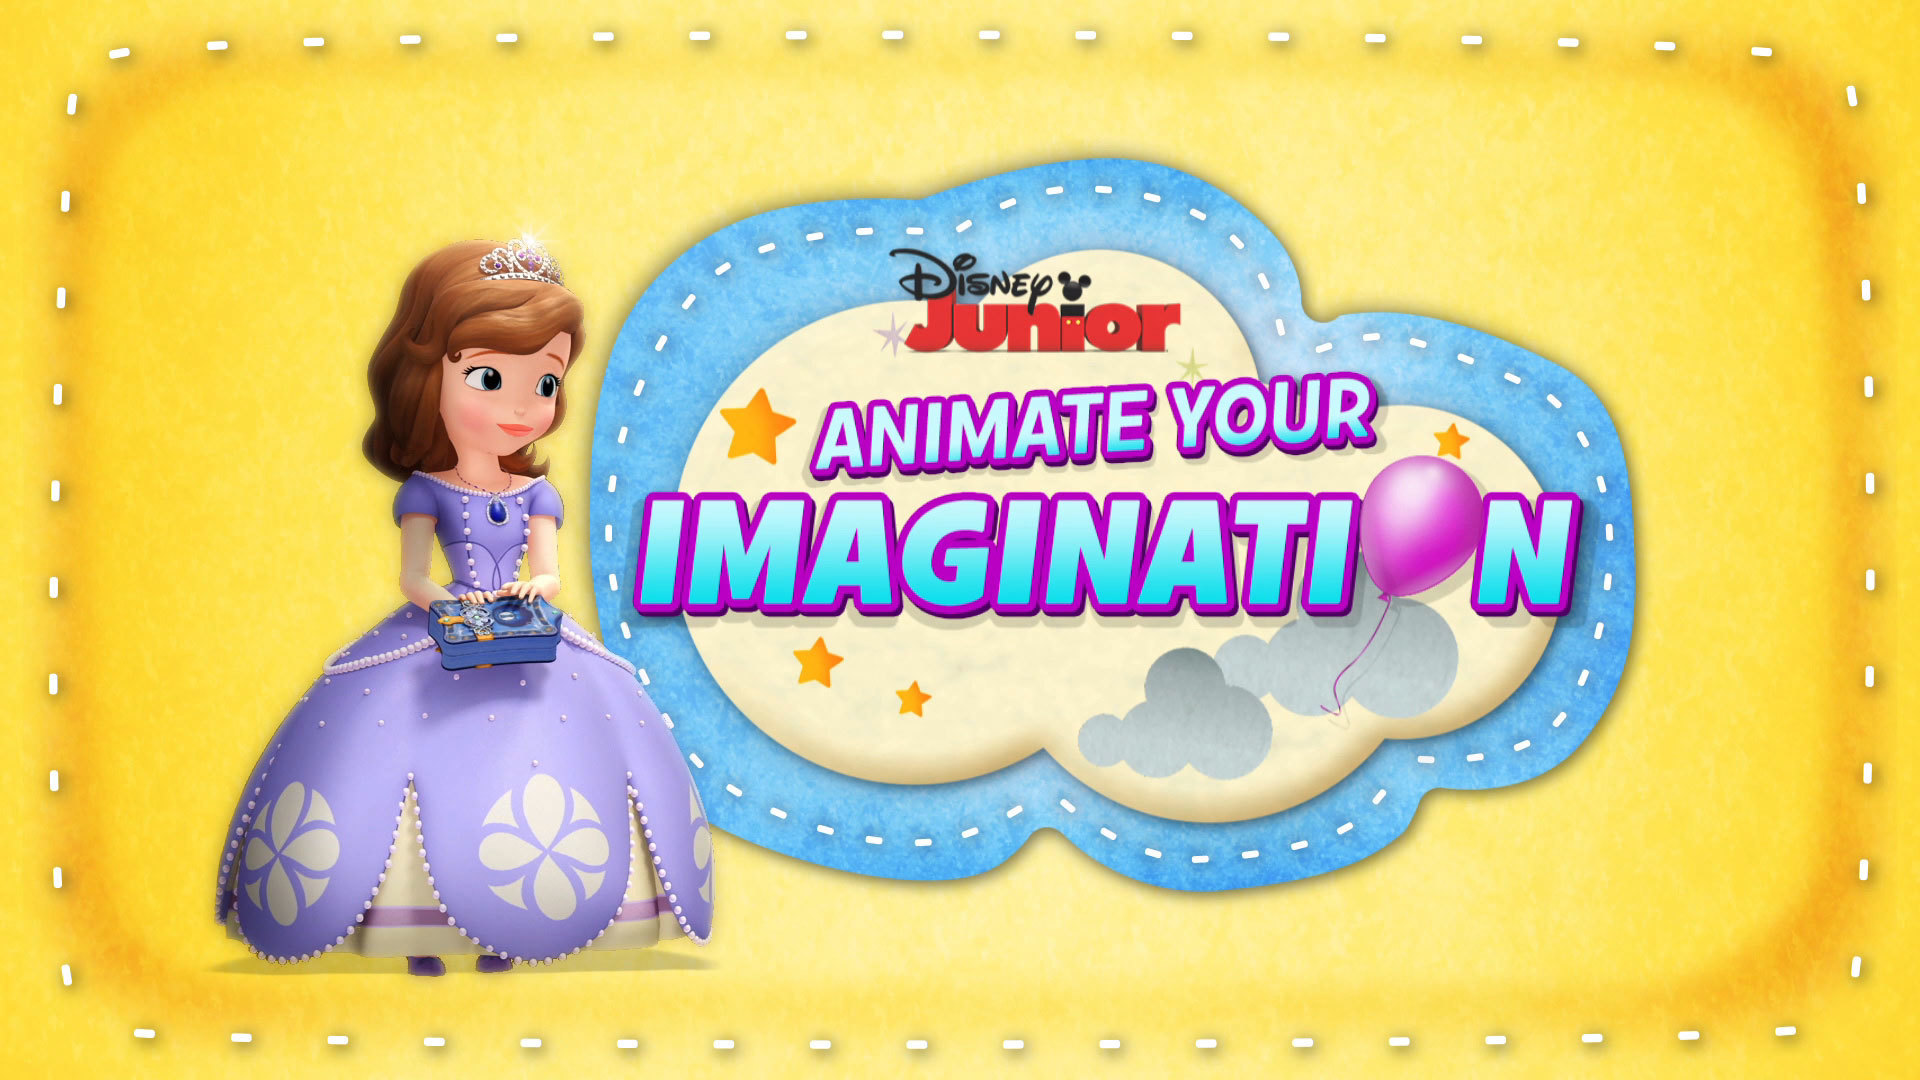 Animate Your Imagination